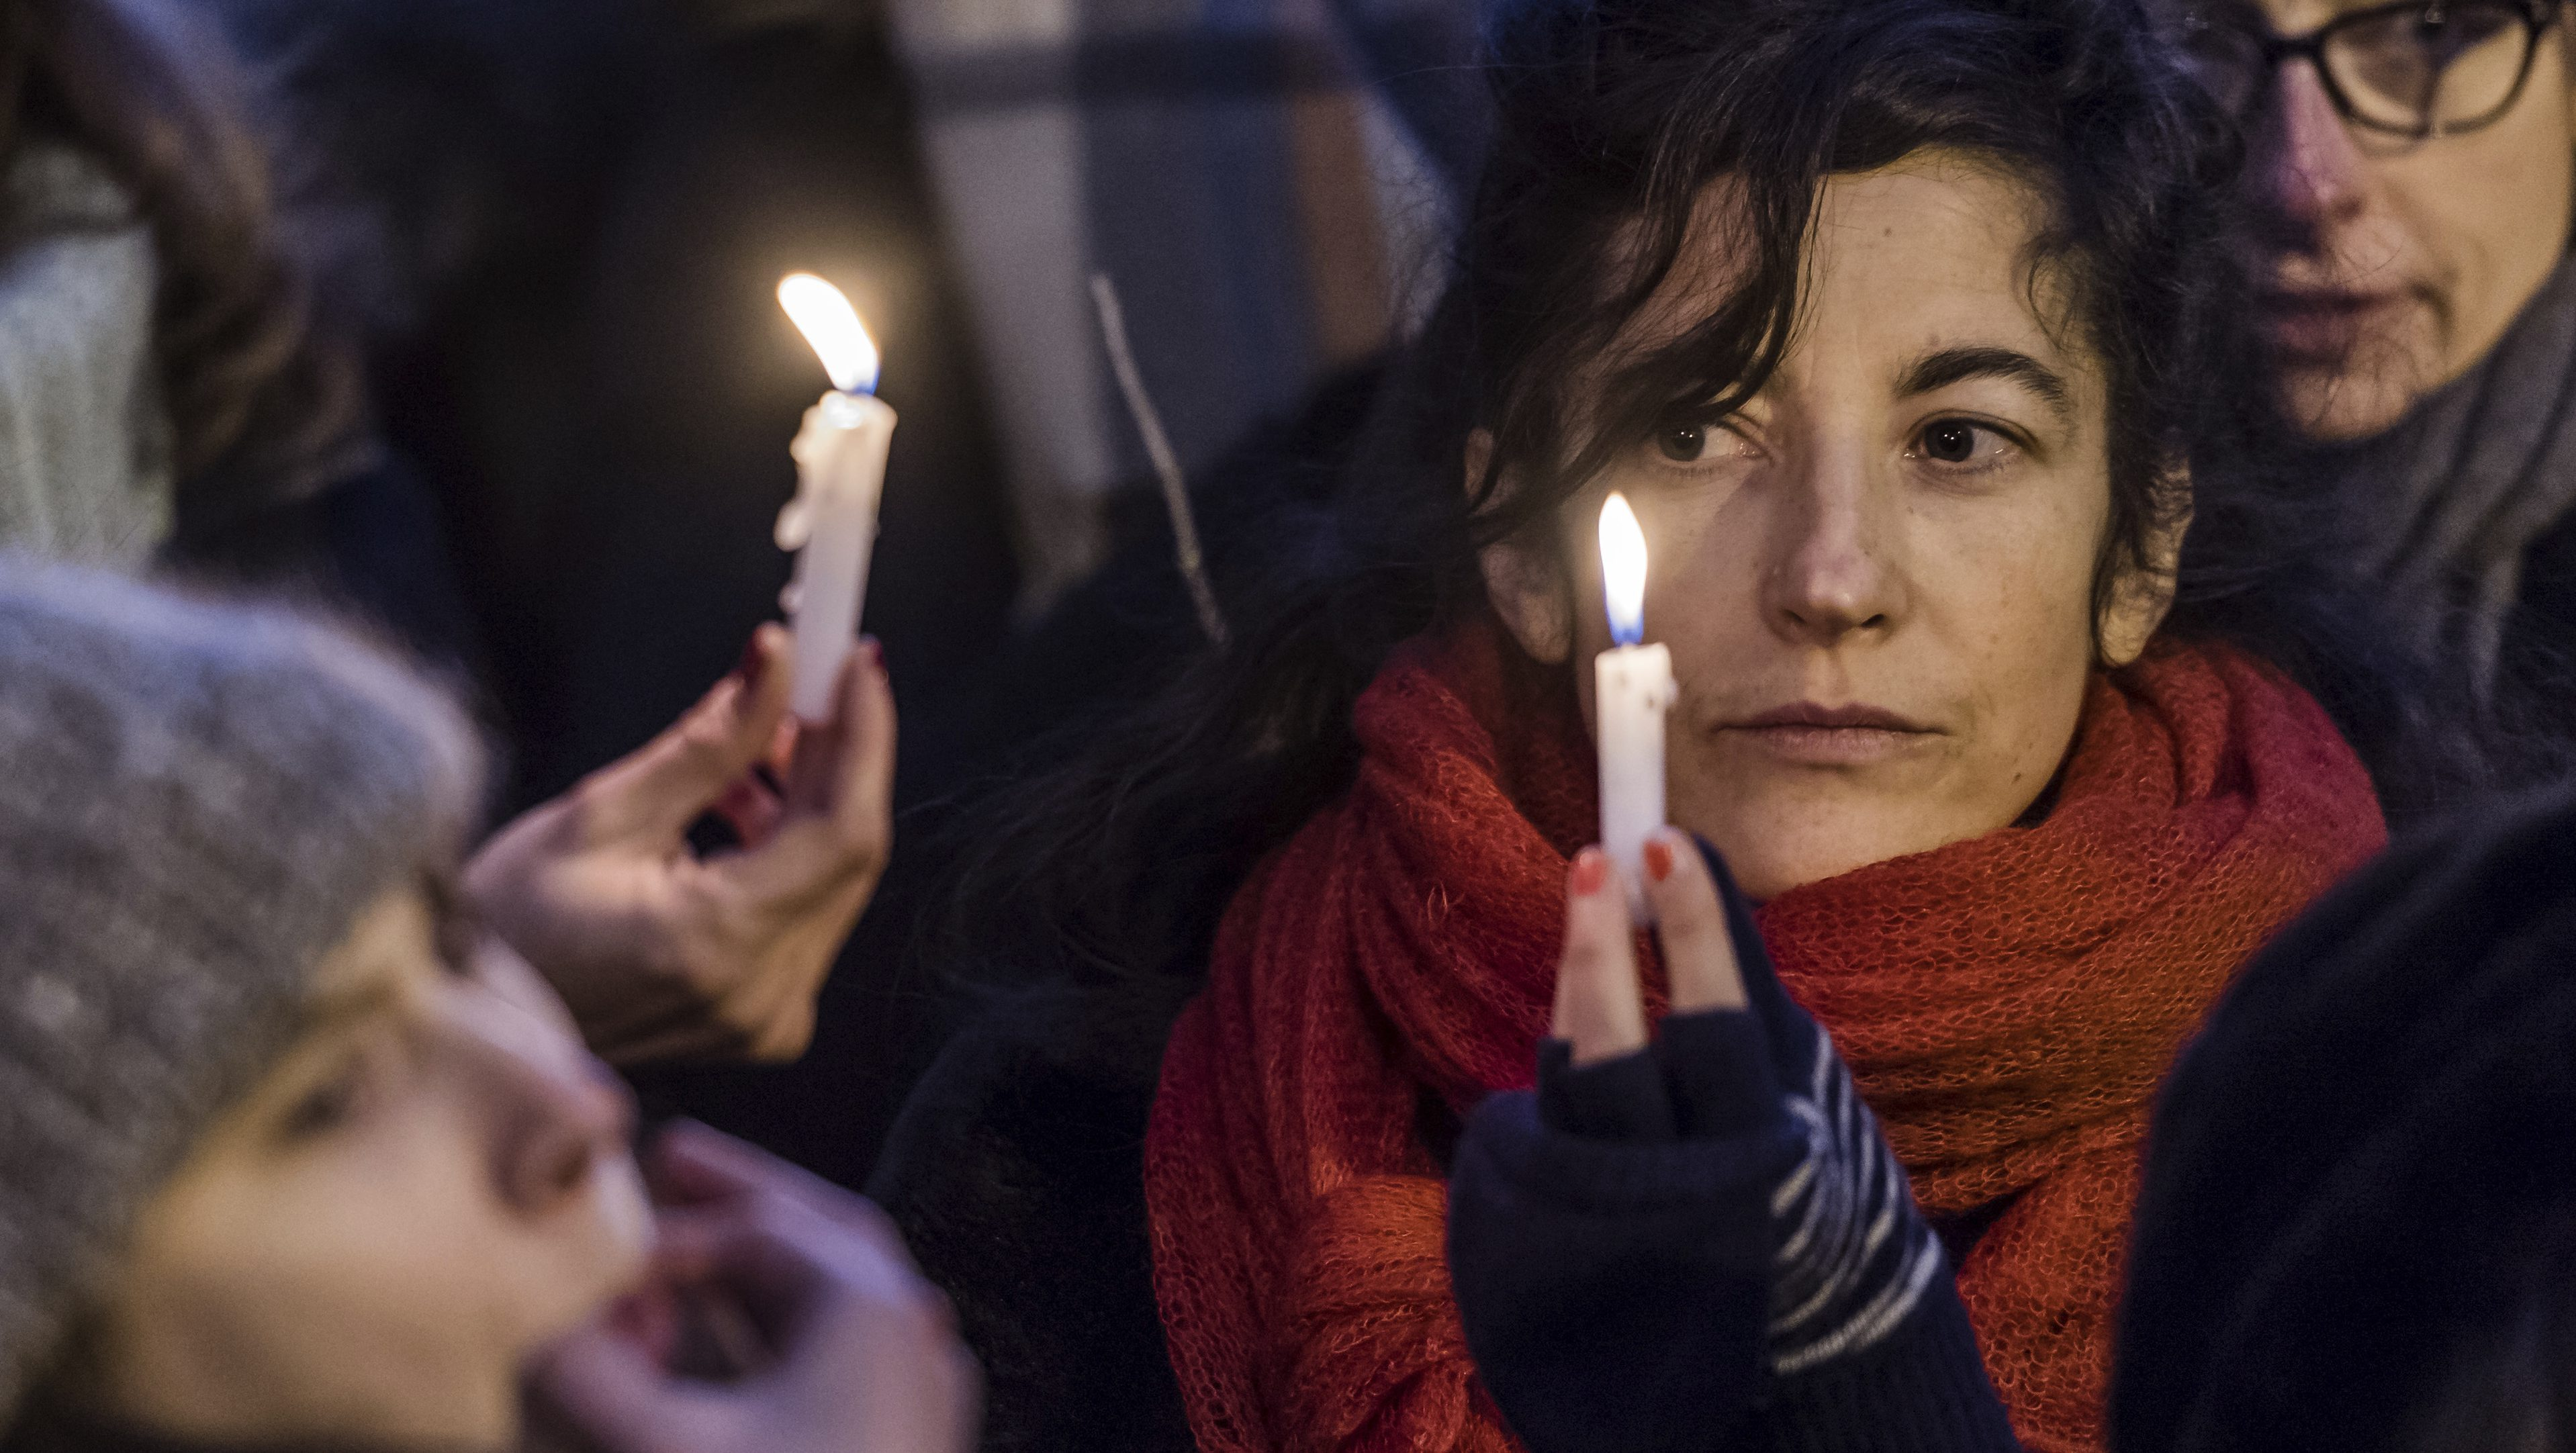 People light candles as they protest in solidarity with the Women's March in Washington at the same time as the U.S. Presidential inauguration, in Brussels on Friday, Jan. 20, 2017. The event organized by a multicultural grassroots coalition of women in the Brussels area seek to counter the rise of the far right agenda – be it in Europe, the U.S. or beyond. (AP Photo/Geert Vanden Wijngaert)